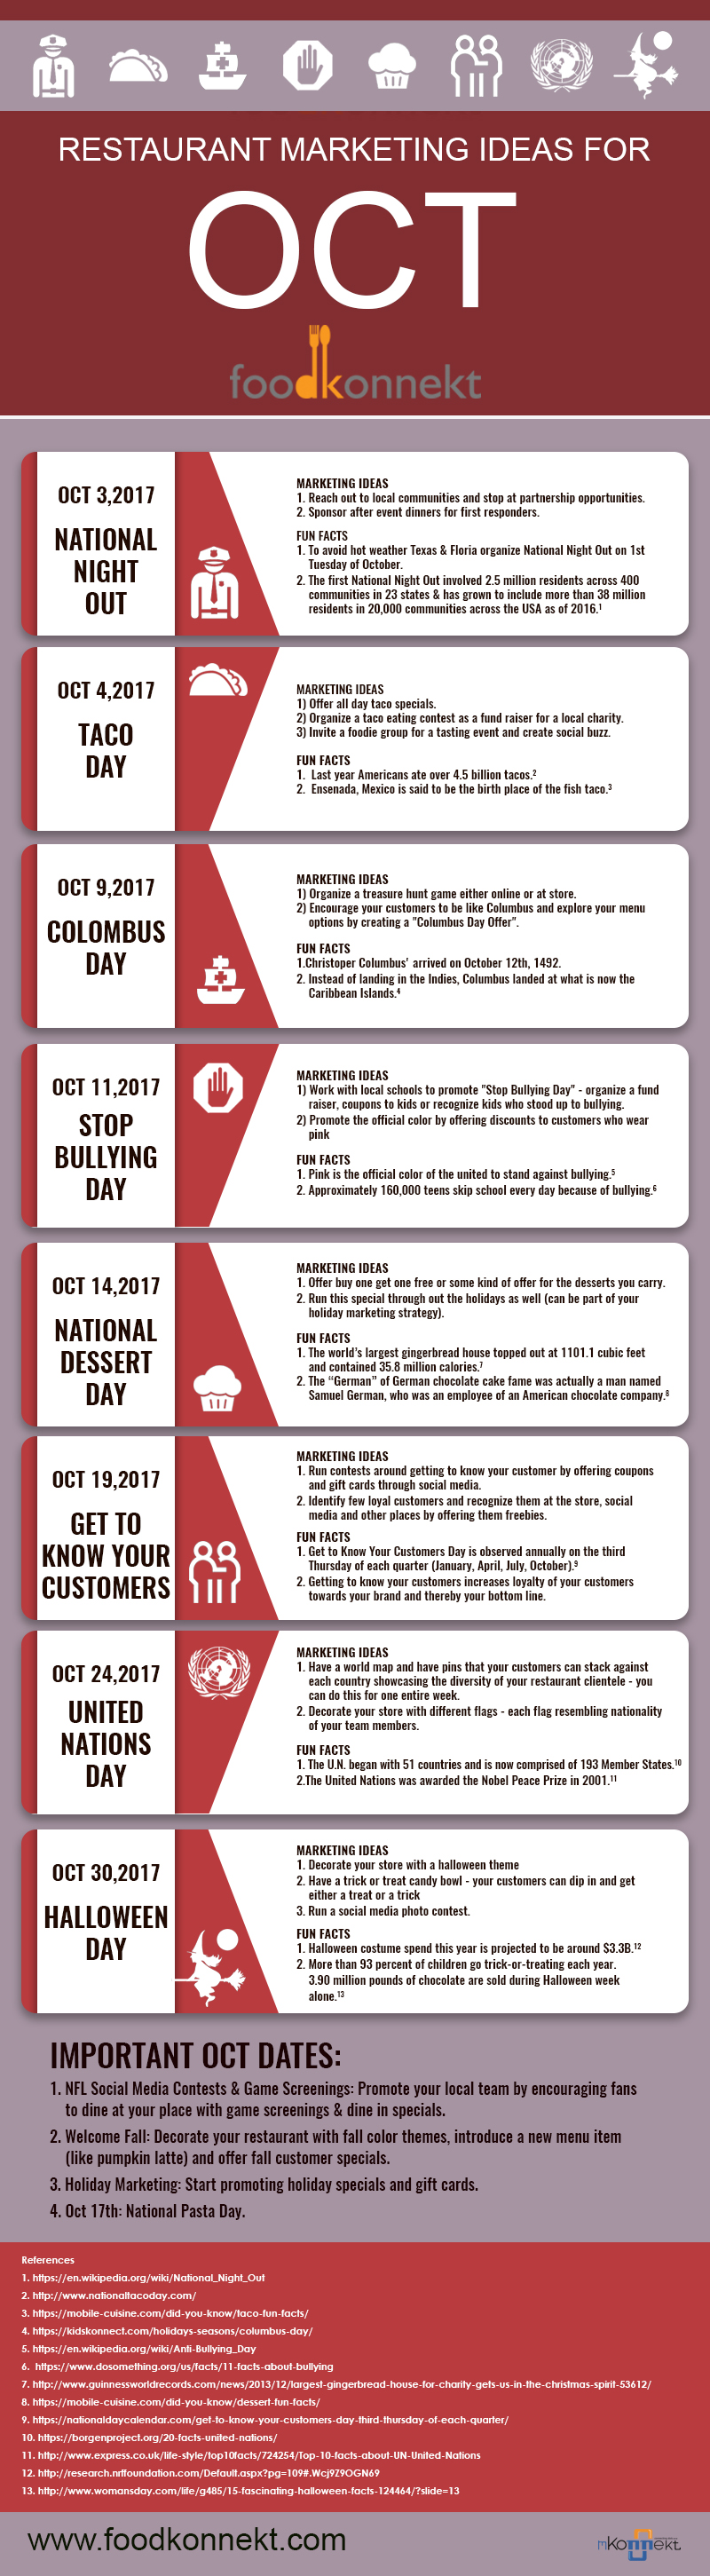 Restaurant Marketing Ideas for Oct